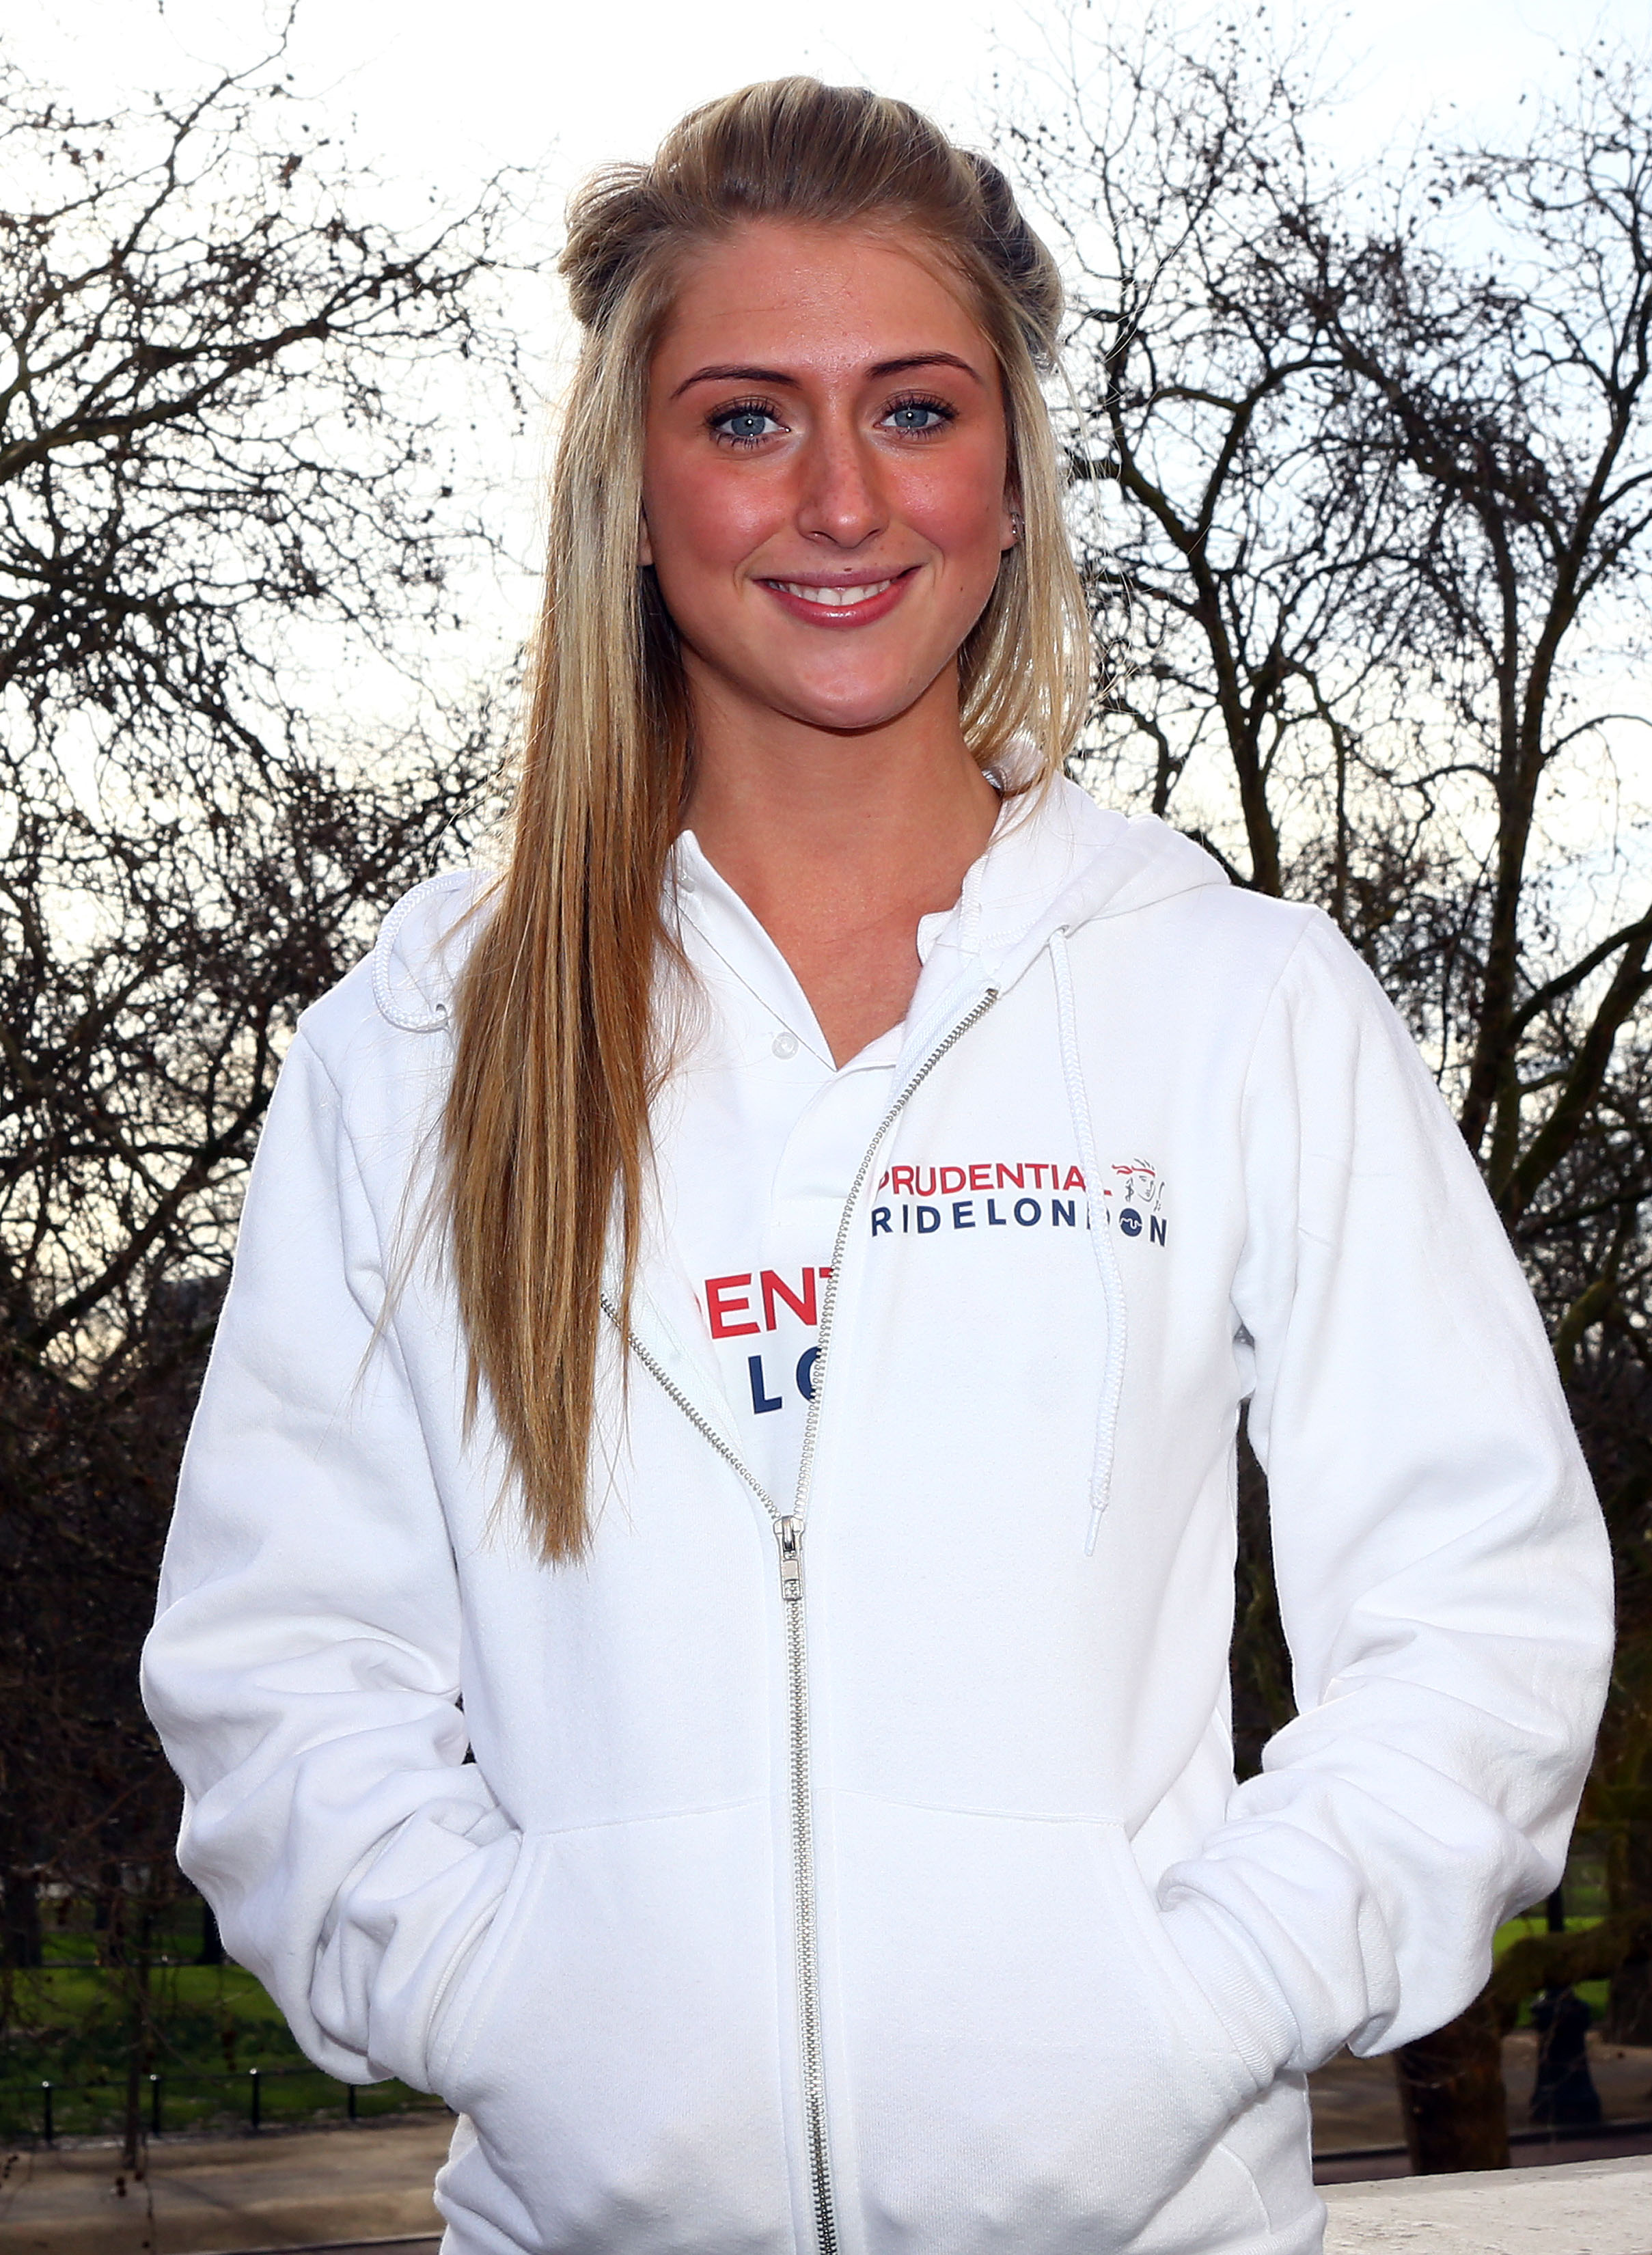 Double Olympic Gold medallist and Prudential RideLondon ambassador Laura Trott